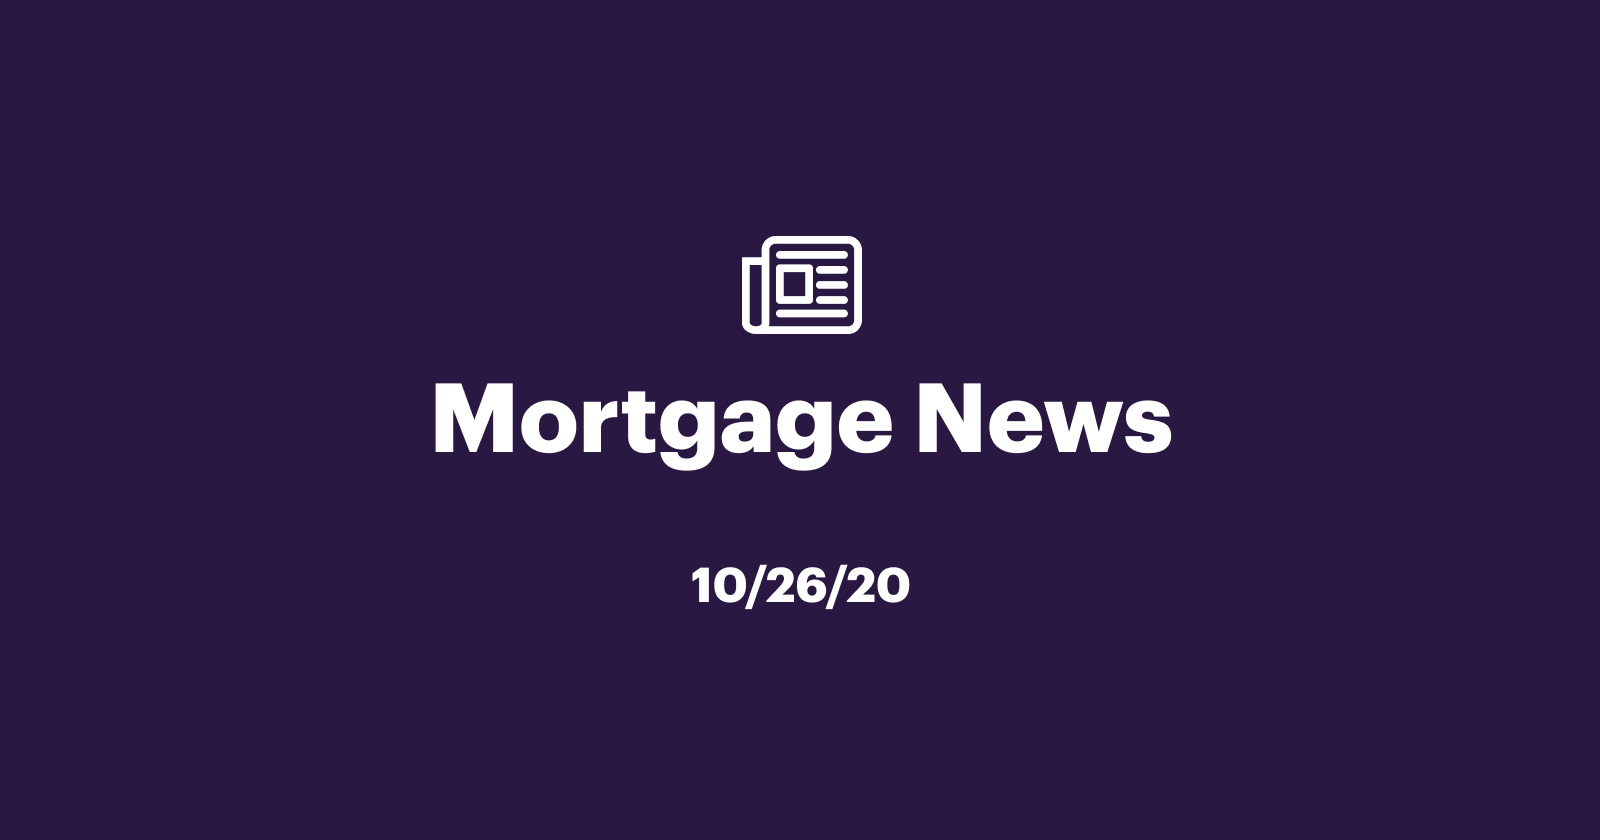 Mortgage News 10/26/20: Home Sales Decline as More Buyers Plan Future Purchases